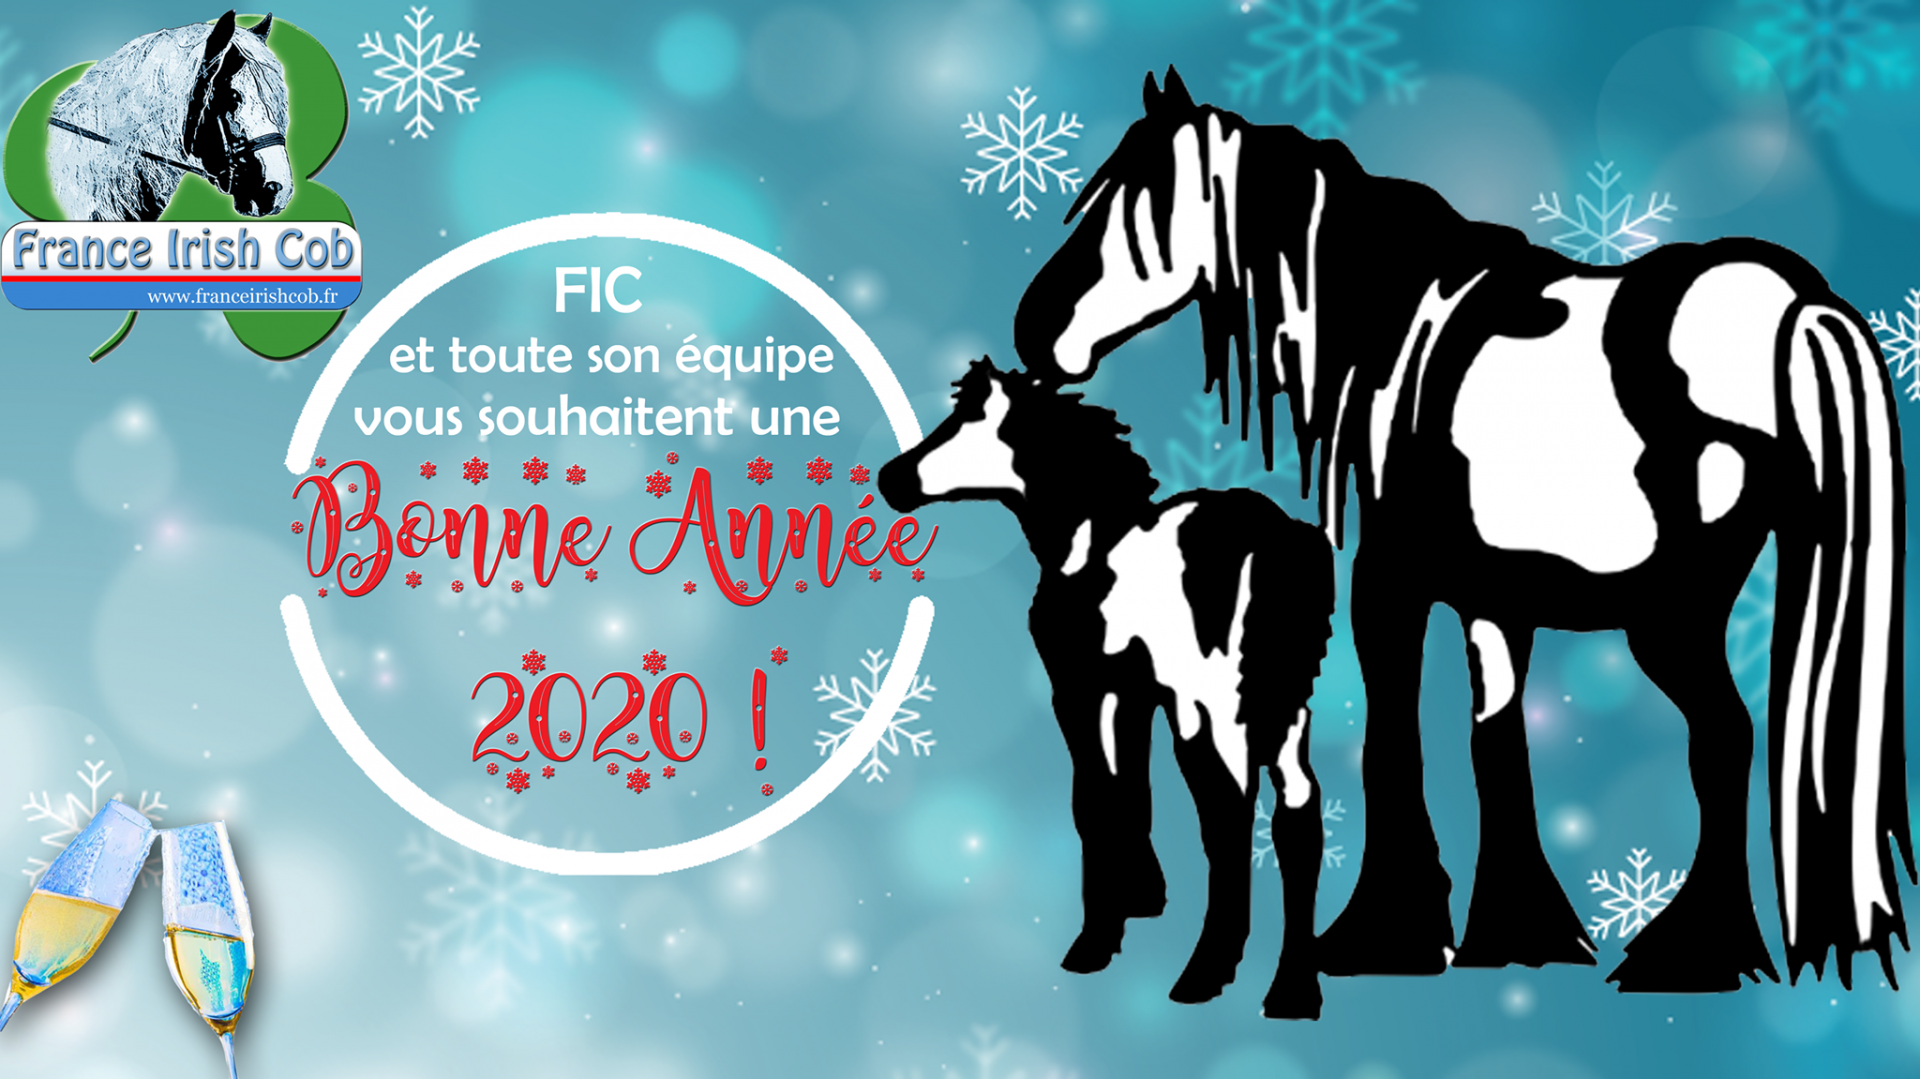 Voeux 2020 fic